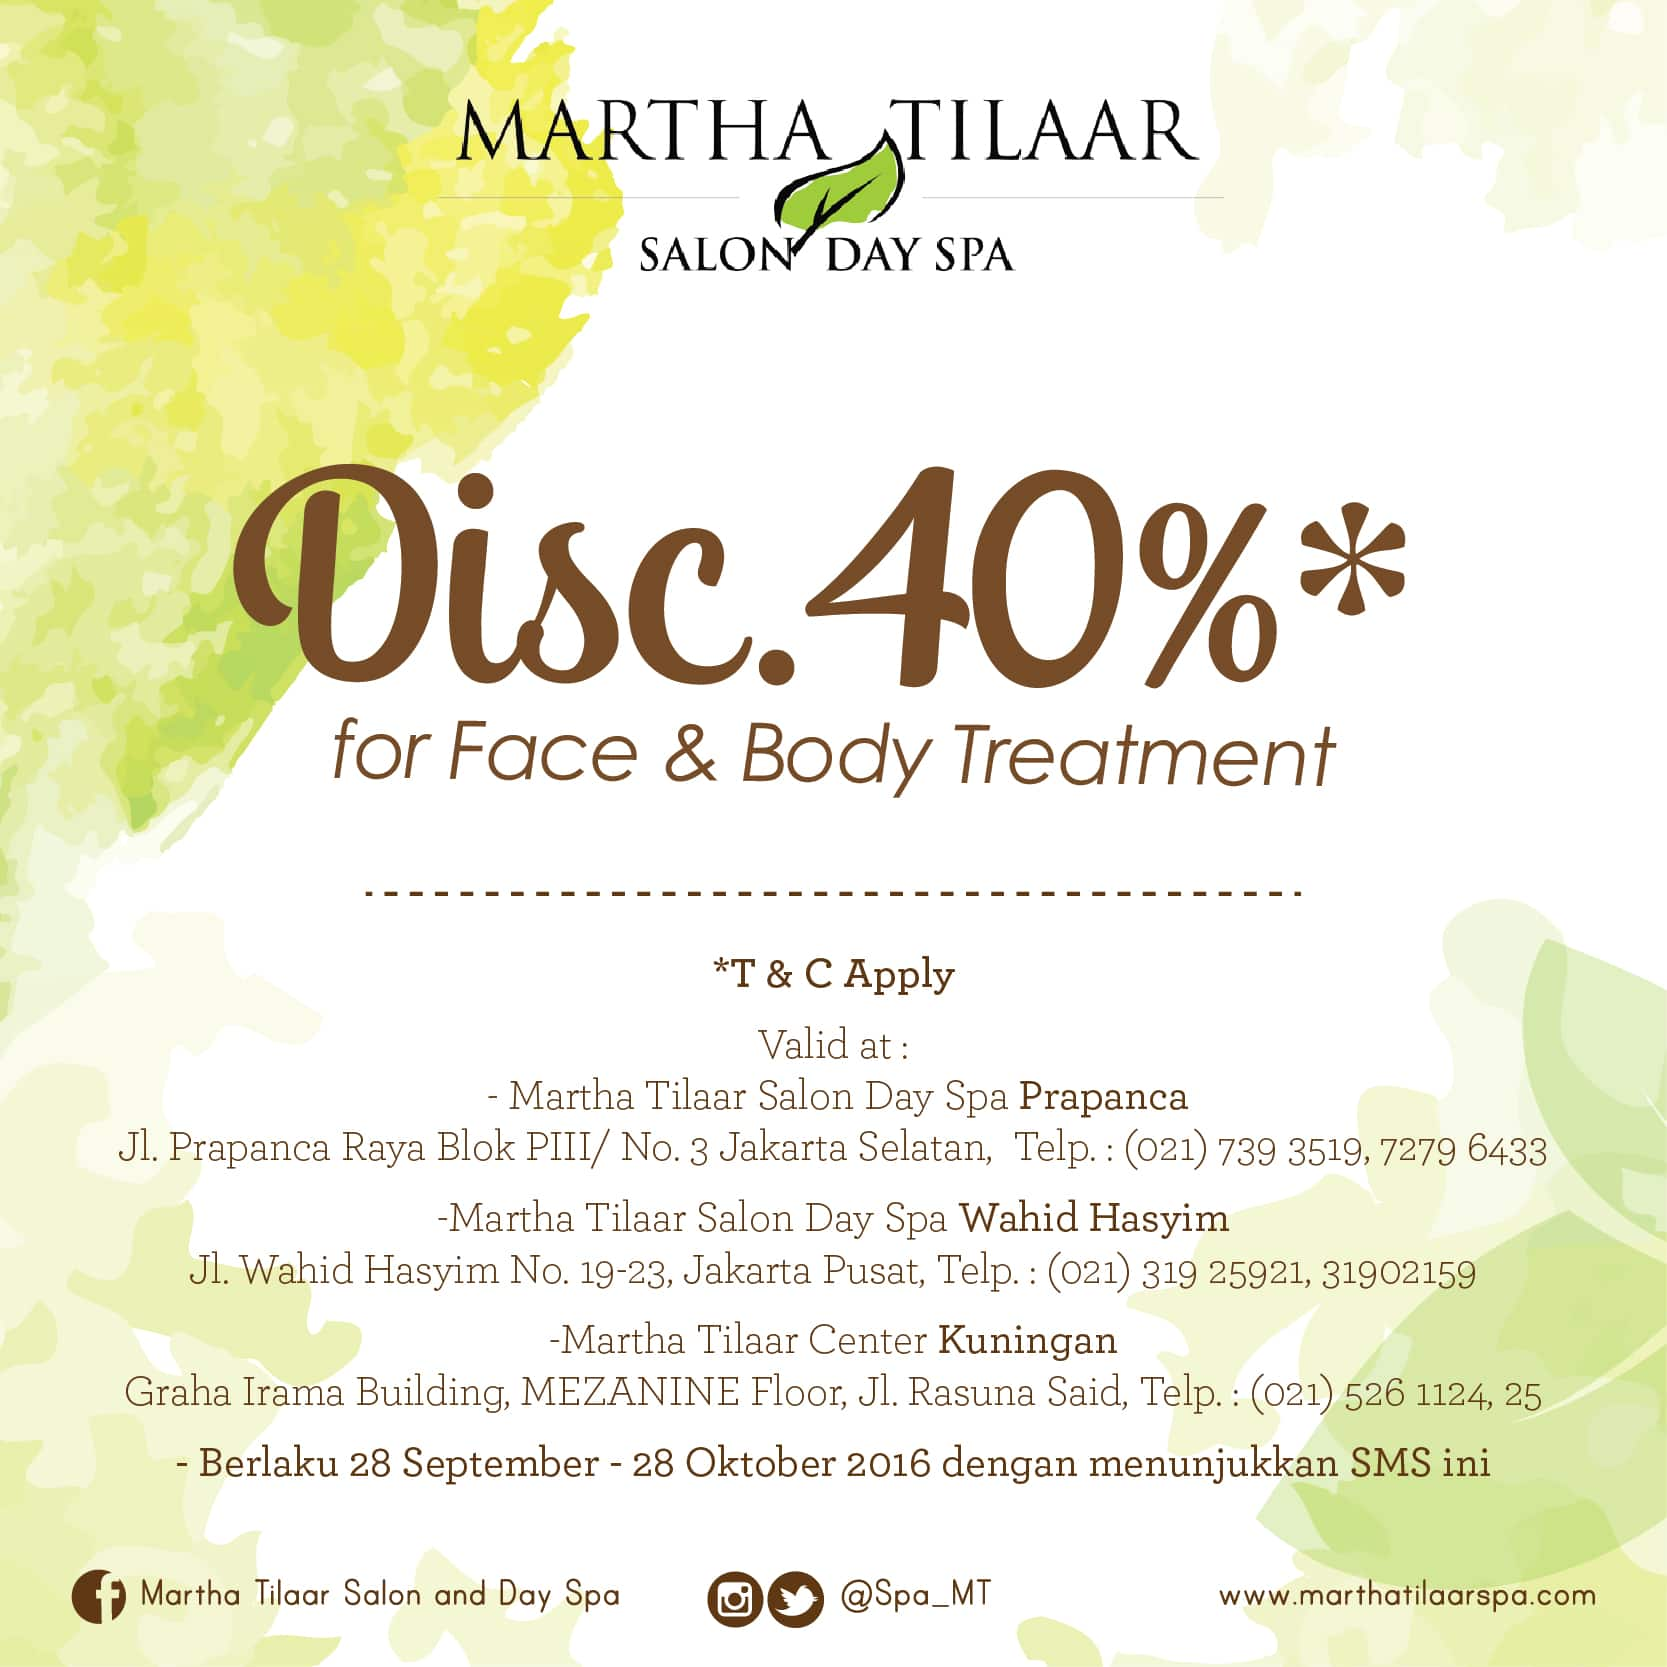 SPECIAL OFFERS FOR KARTU HALO CUSTOMER GET DISCOUNT 40% FOR FACE & BODY TREATMENT